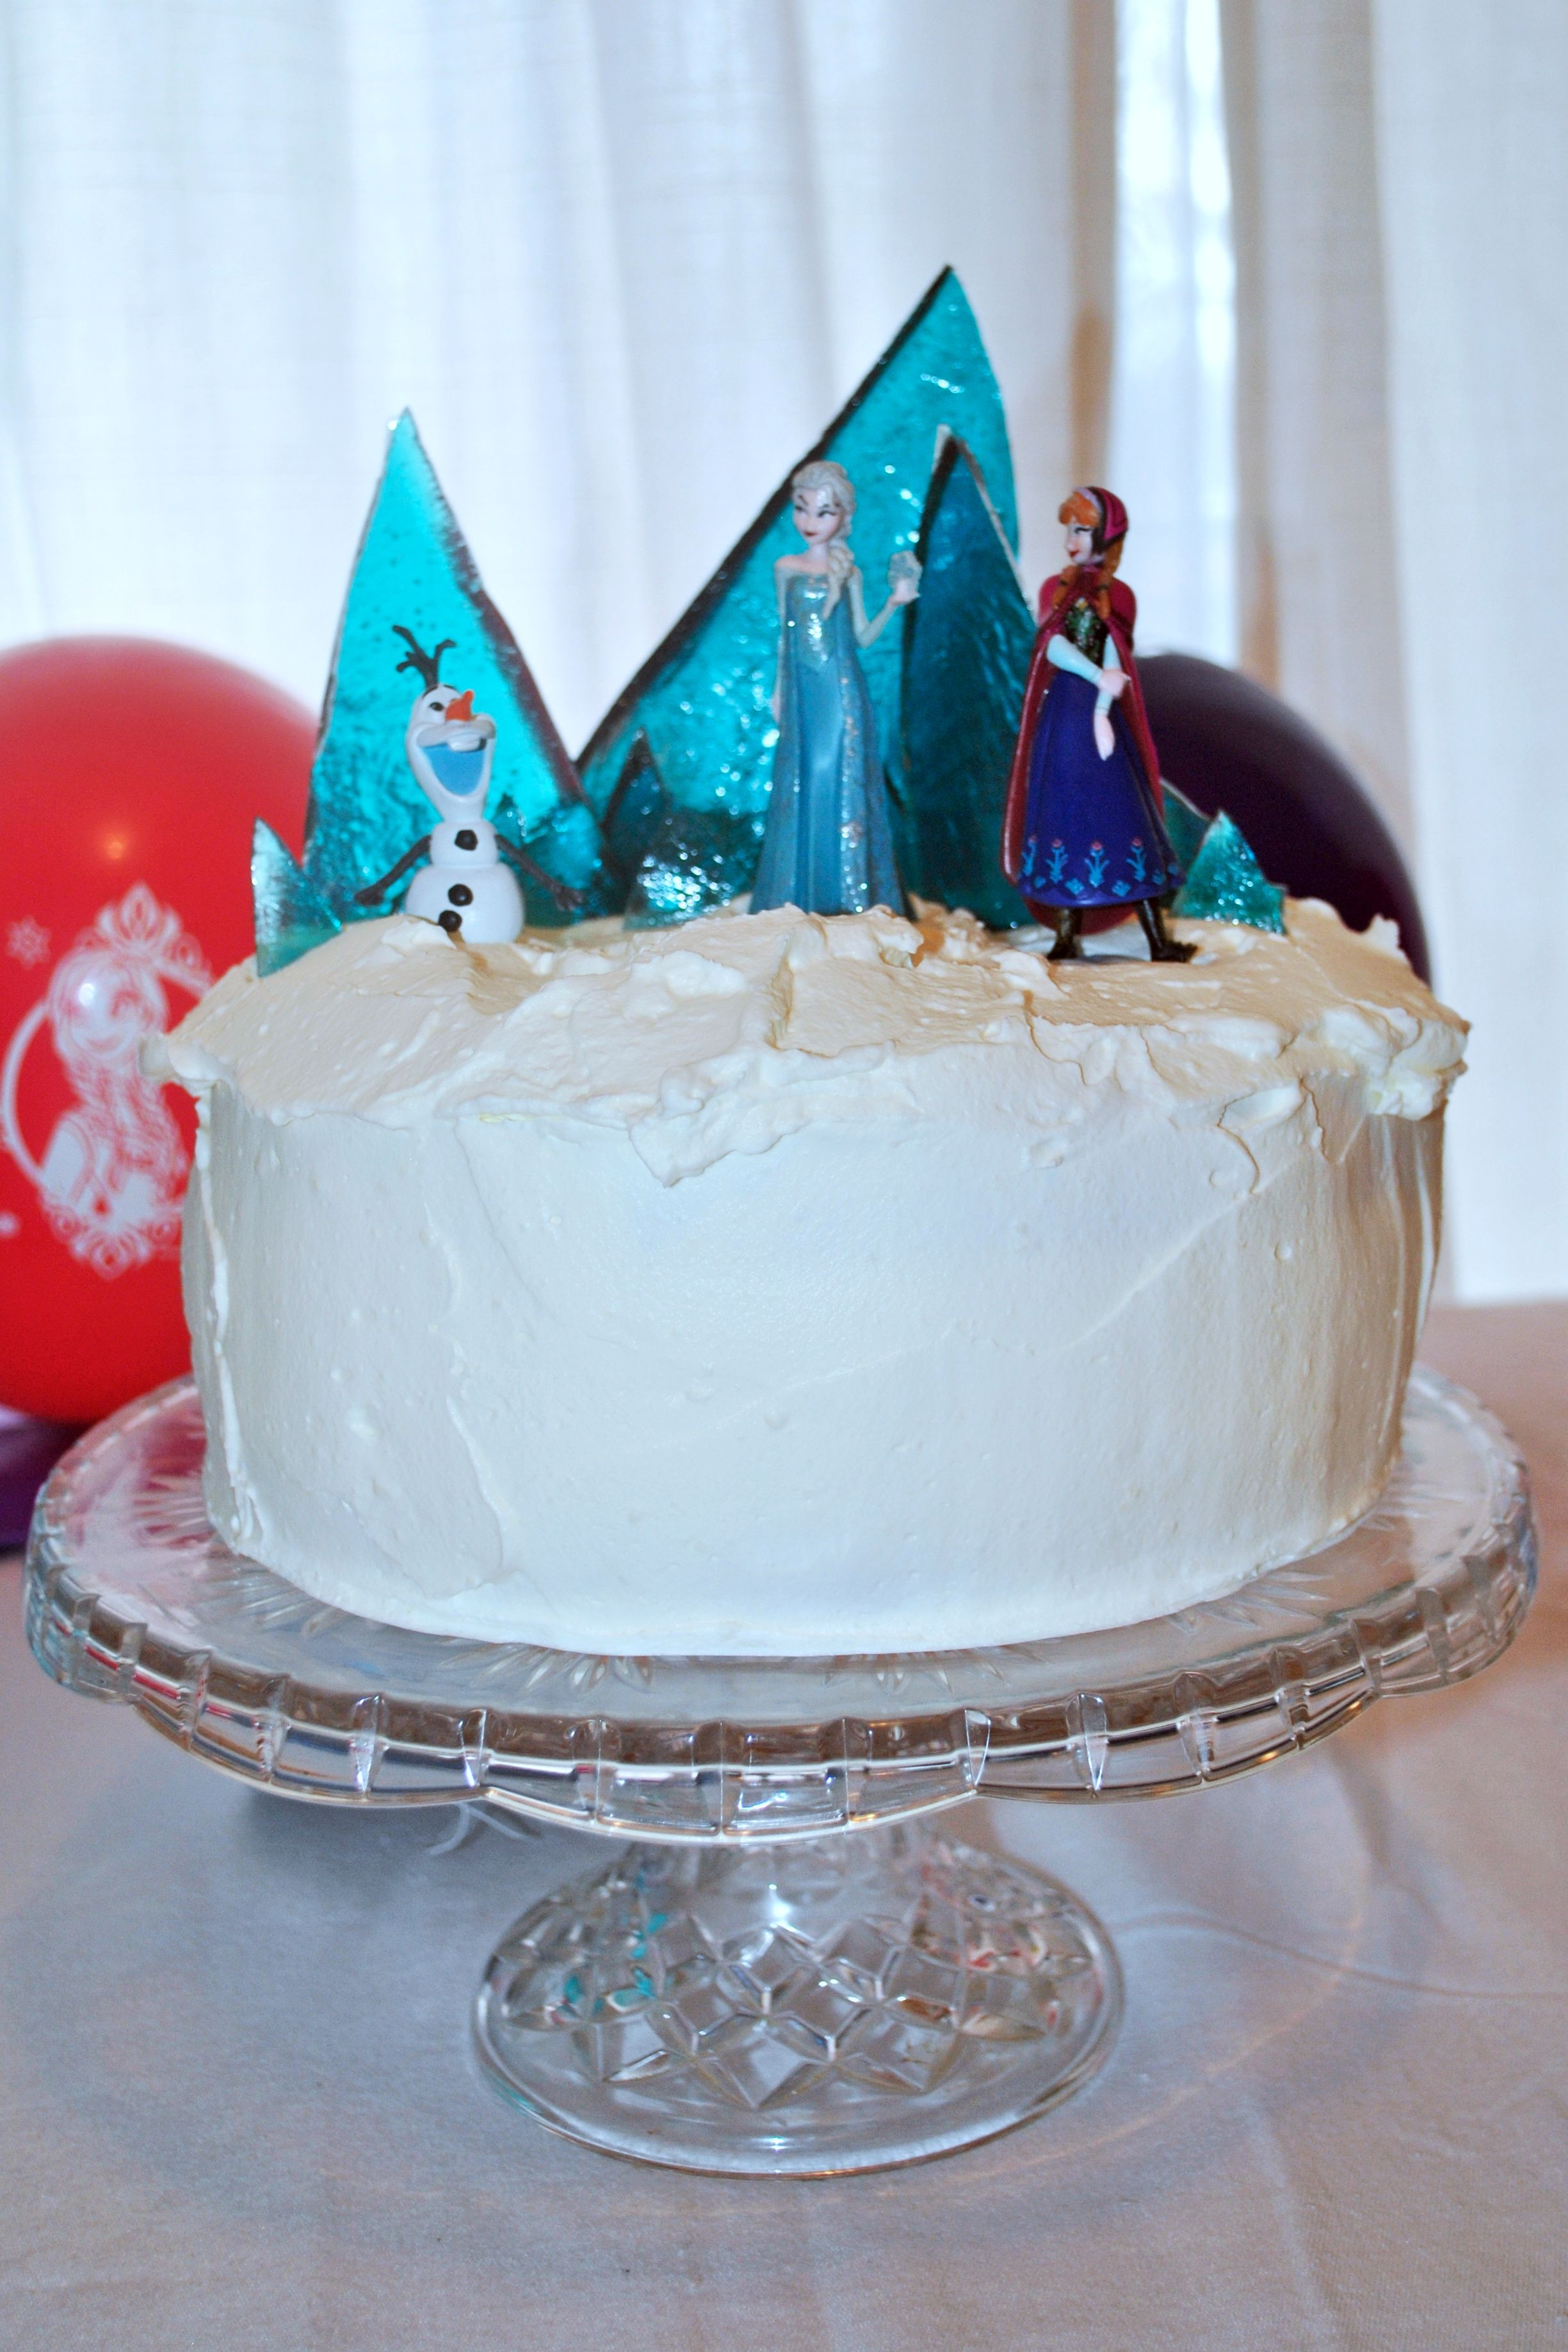 Frozen Cake Whipping Cream Icing Melted Sugar Shards For Ice